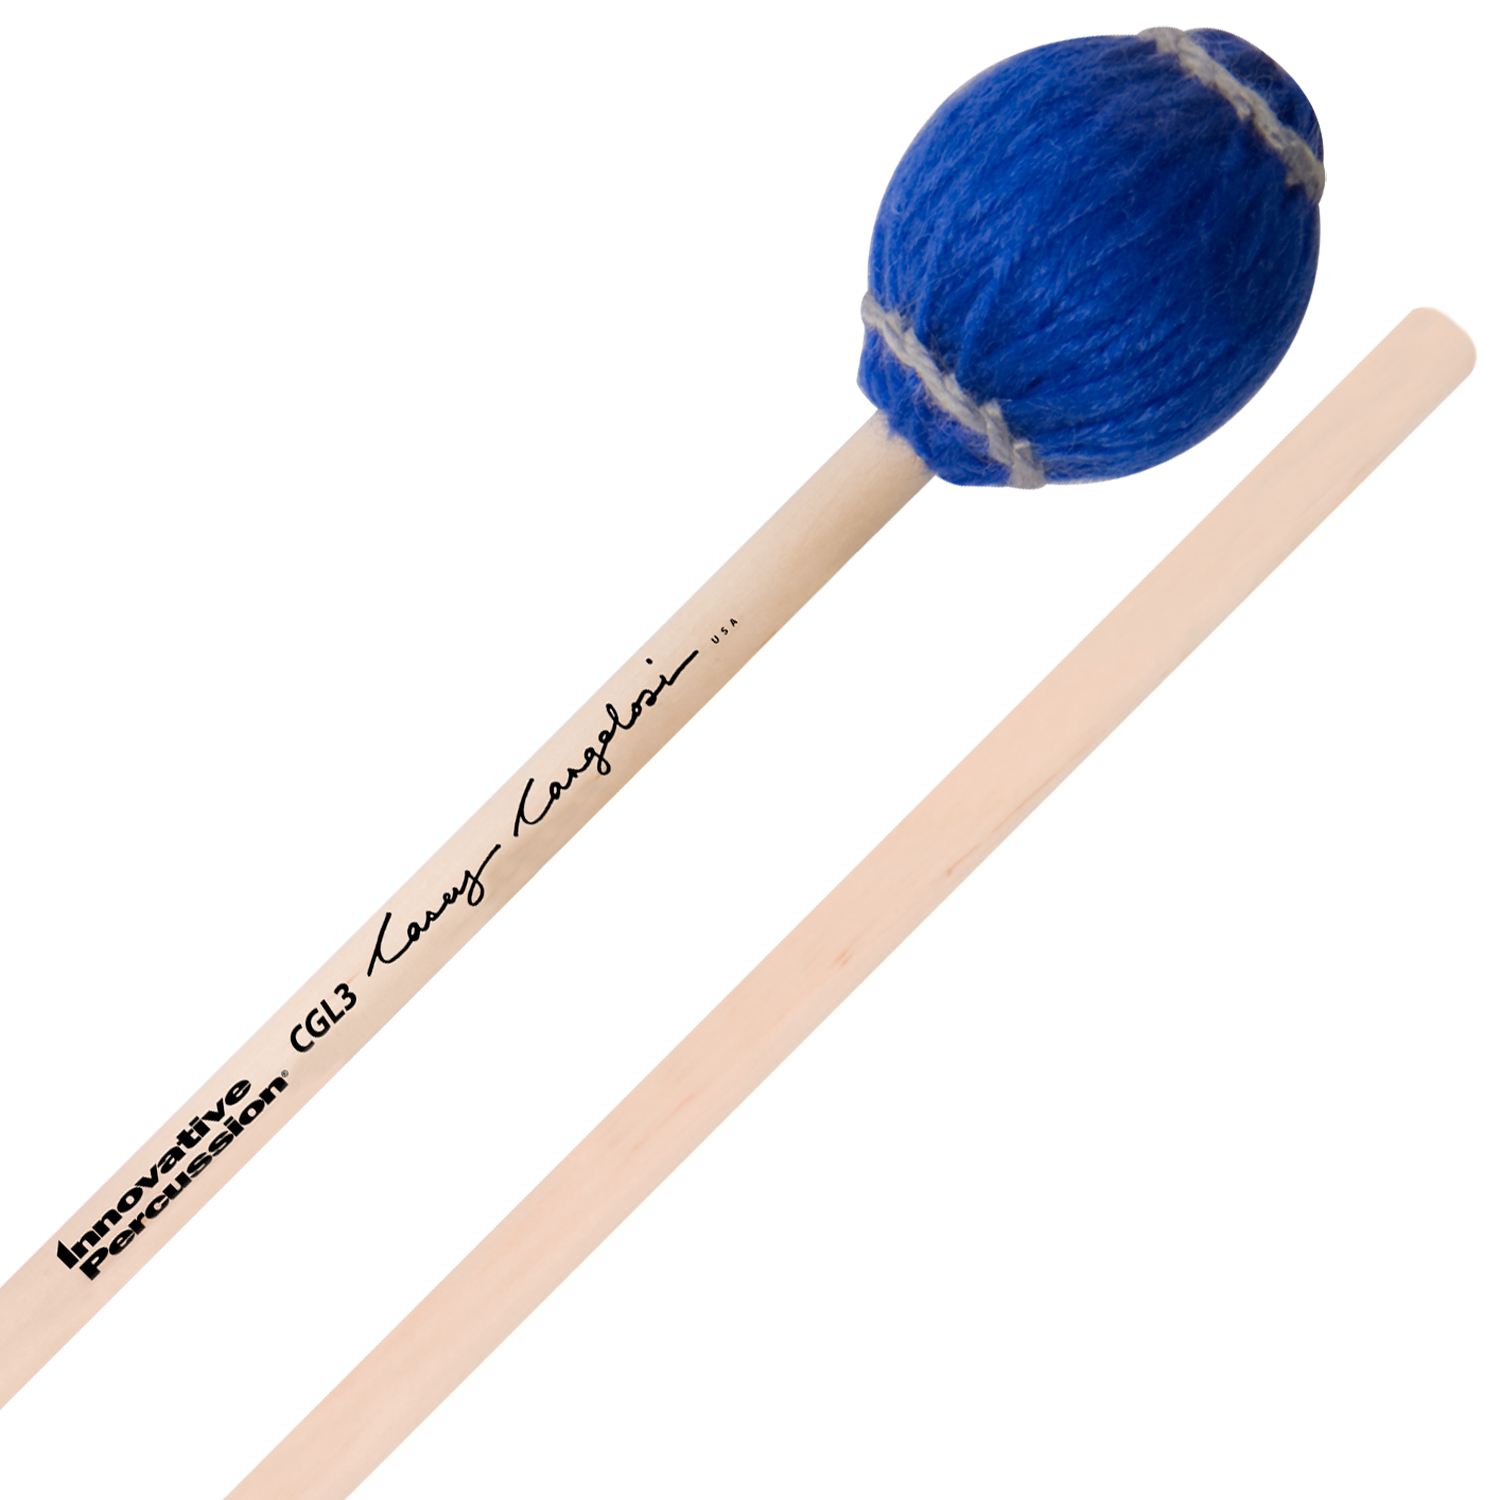 Innovative Percussion Casey Cangelosi Low-Middle Register Marimba Mallets